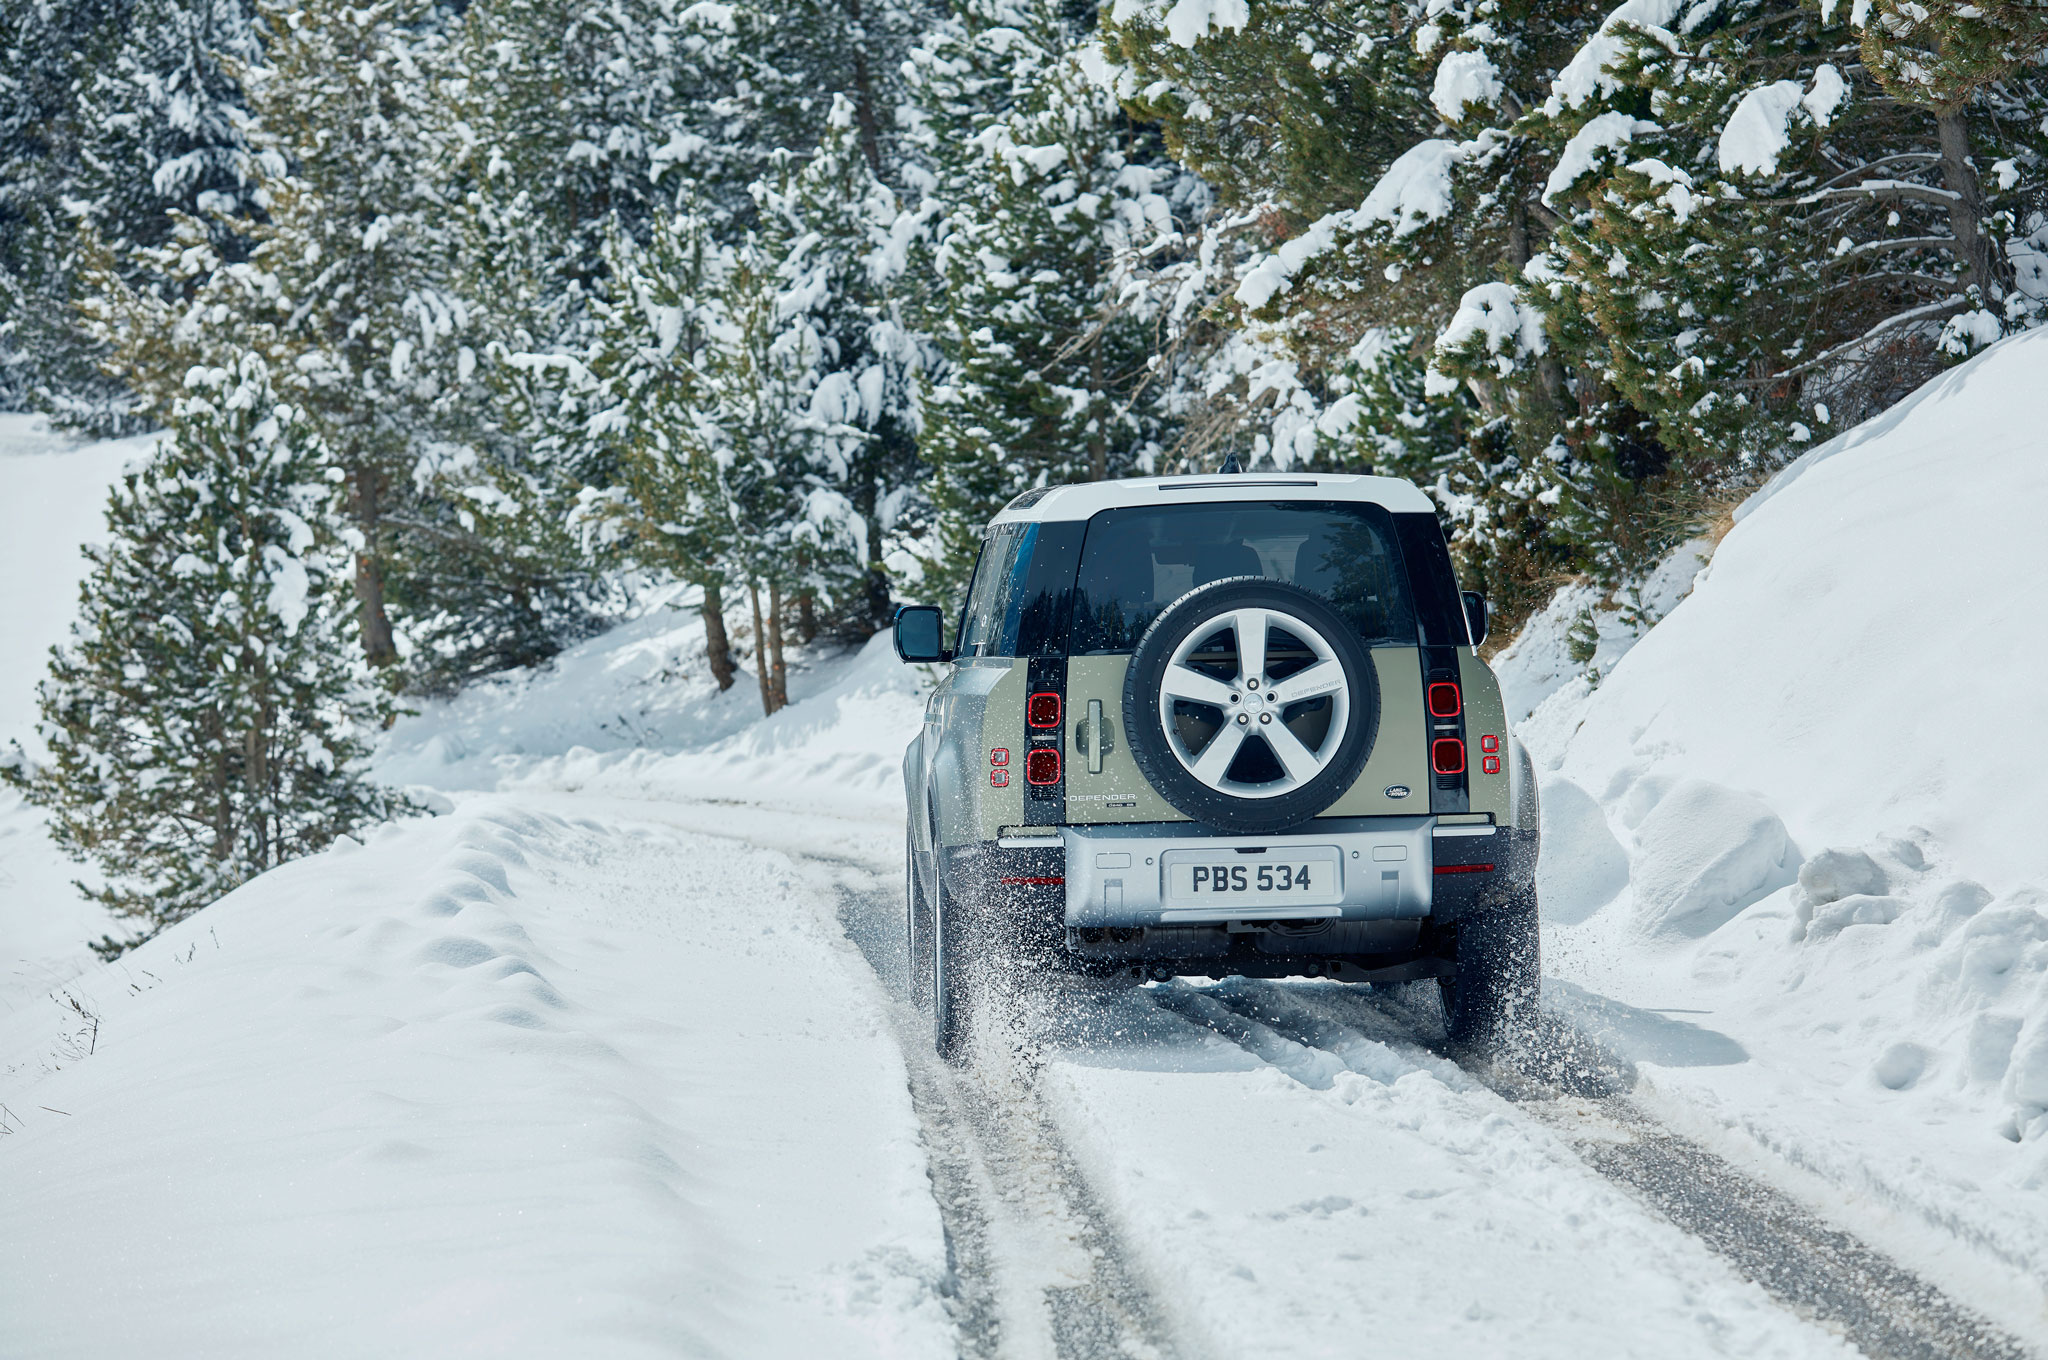 2020 land rover defender 90 off road snow 01